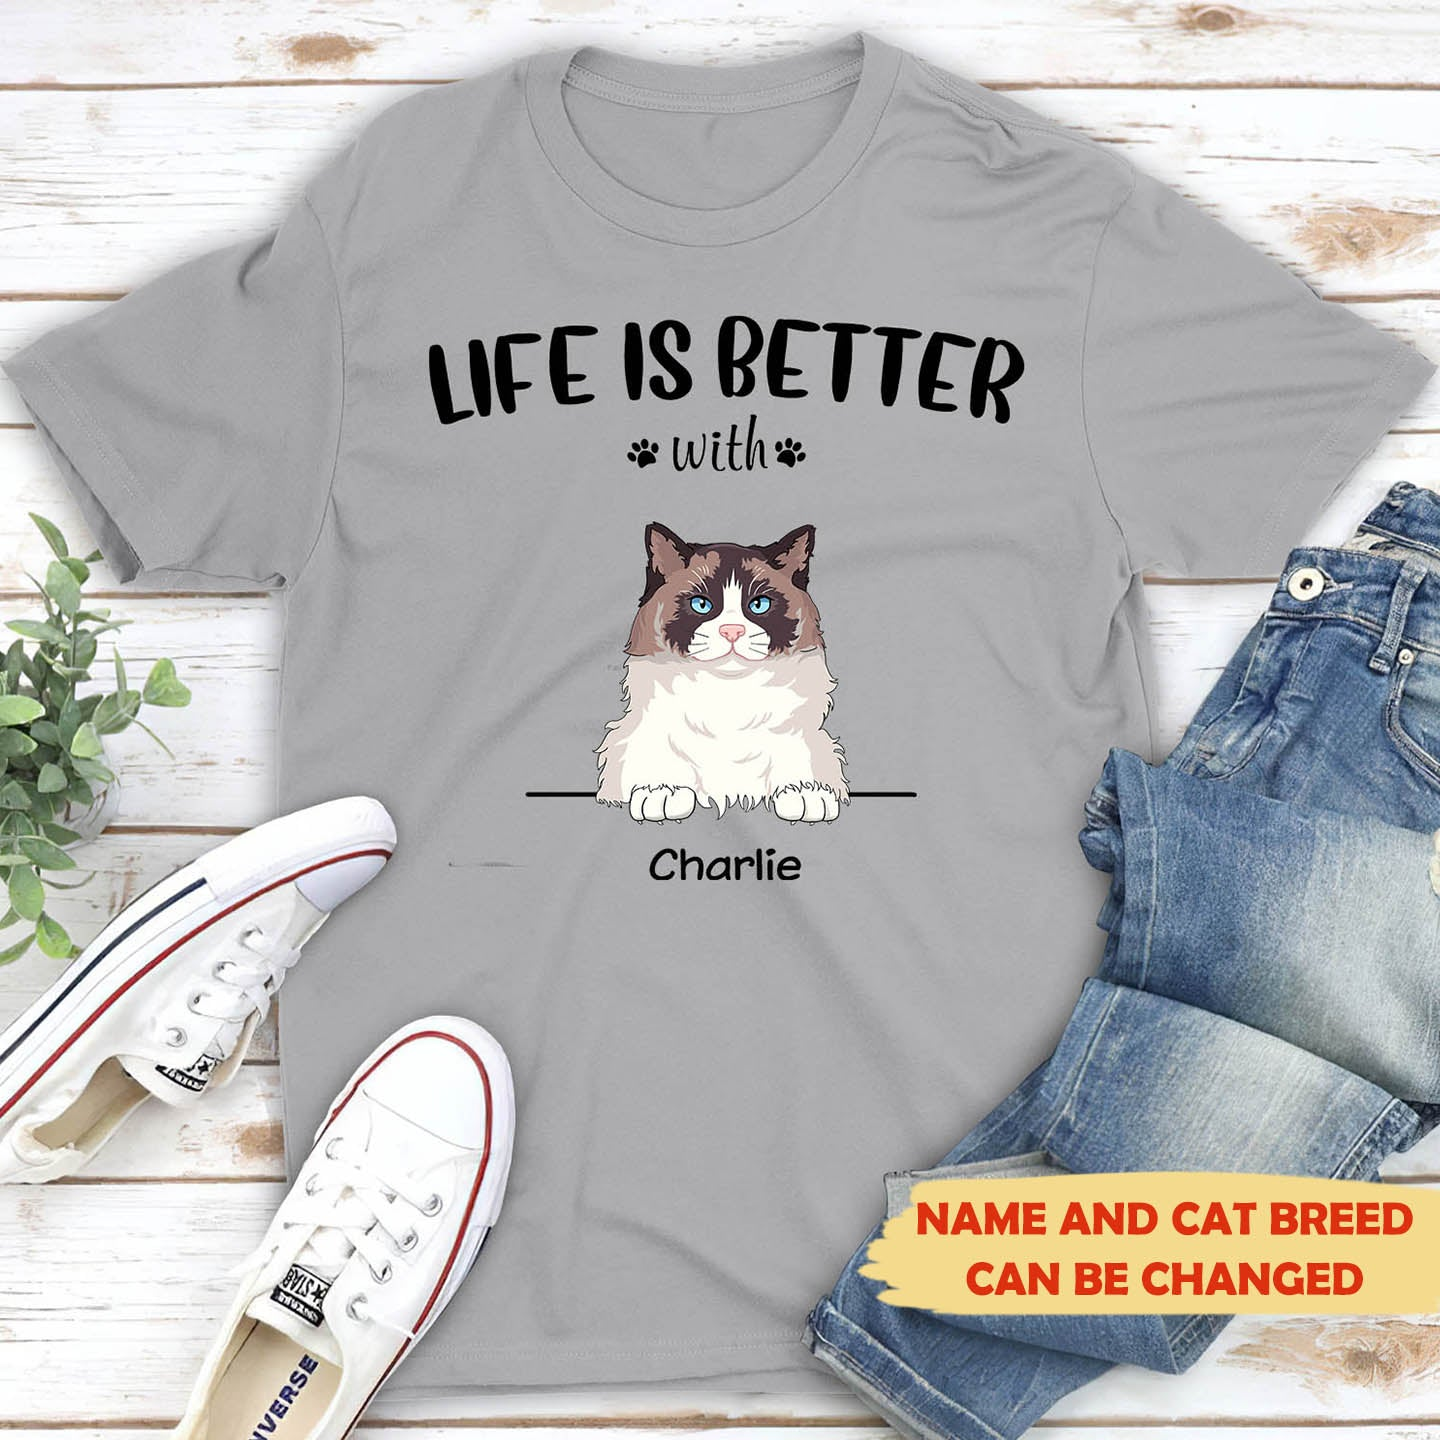 Life is better with cats - Personalized custom premium unisex T-shirt